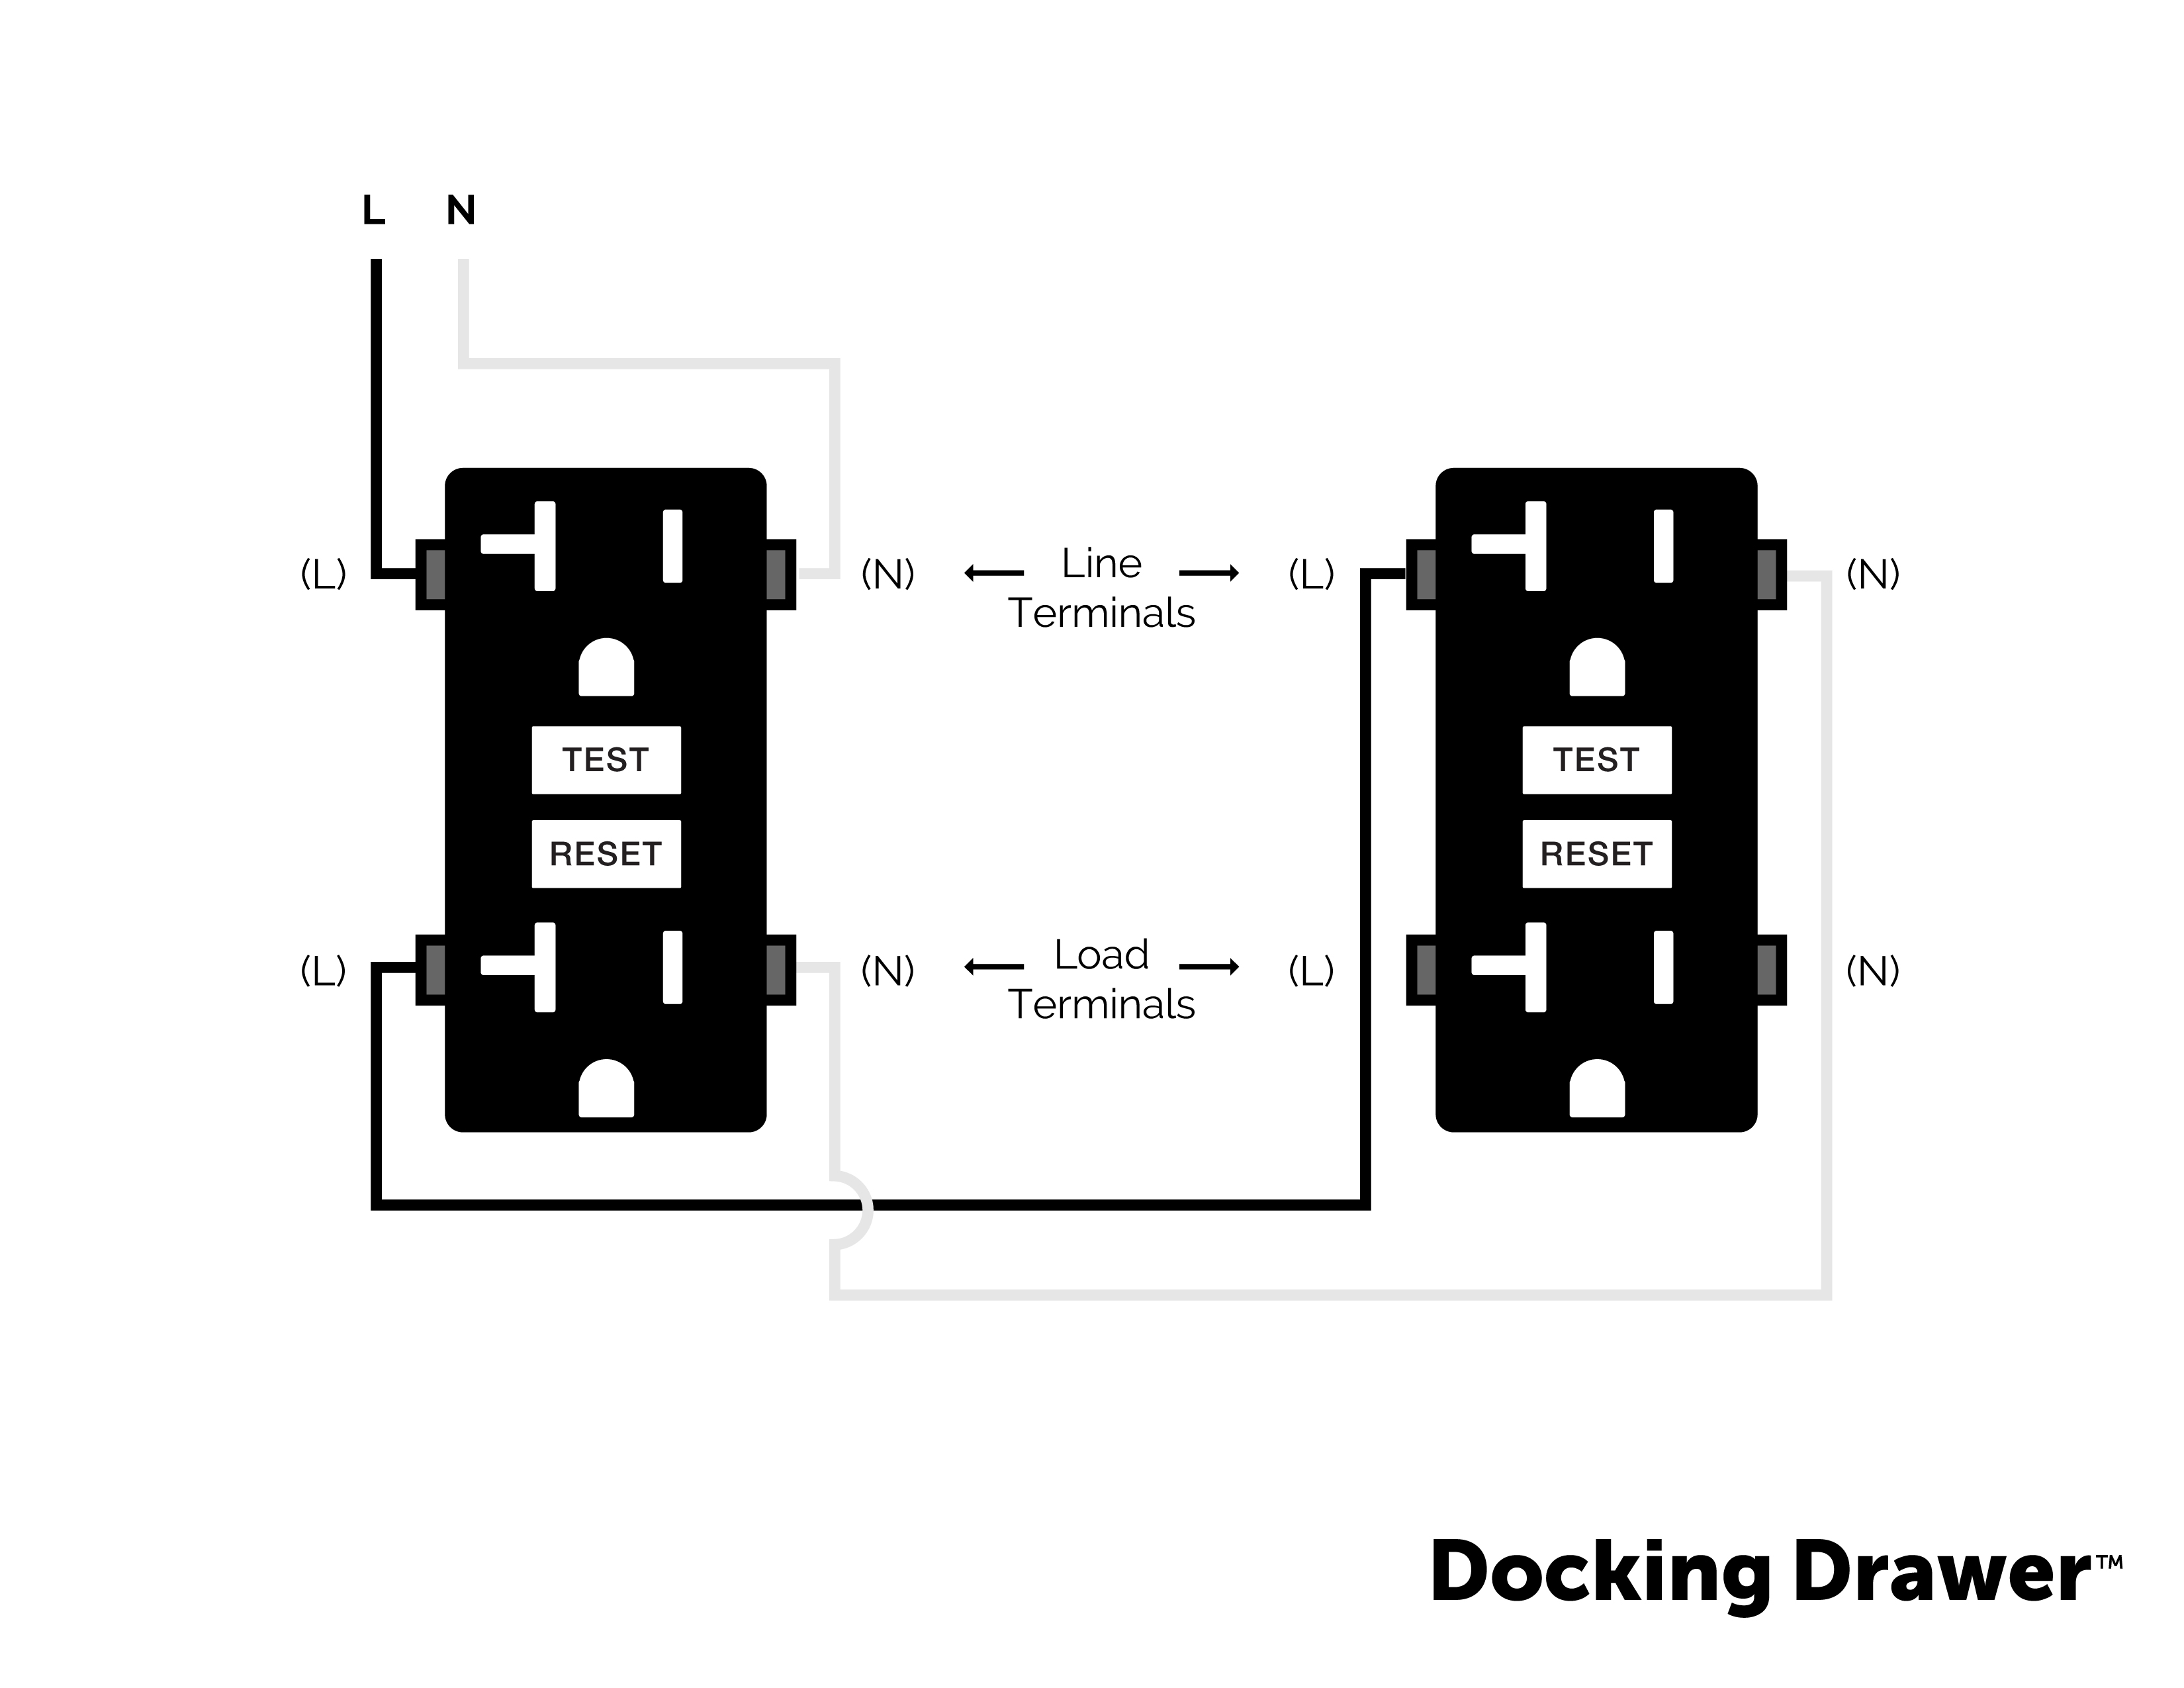 35 Gfci Outlet Wiring Diagram